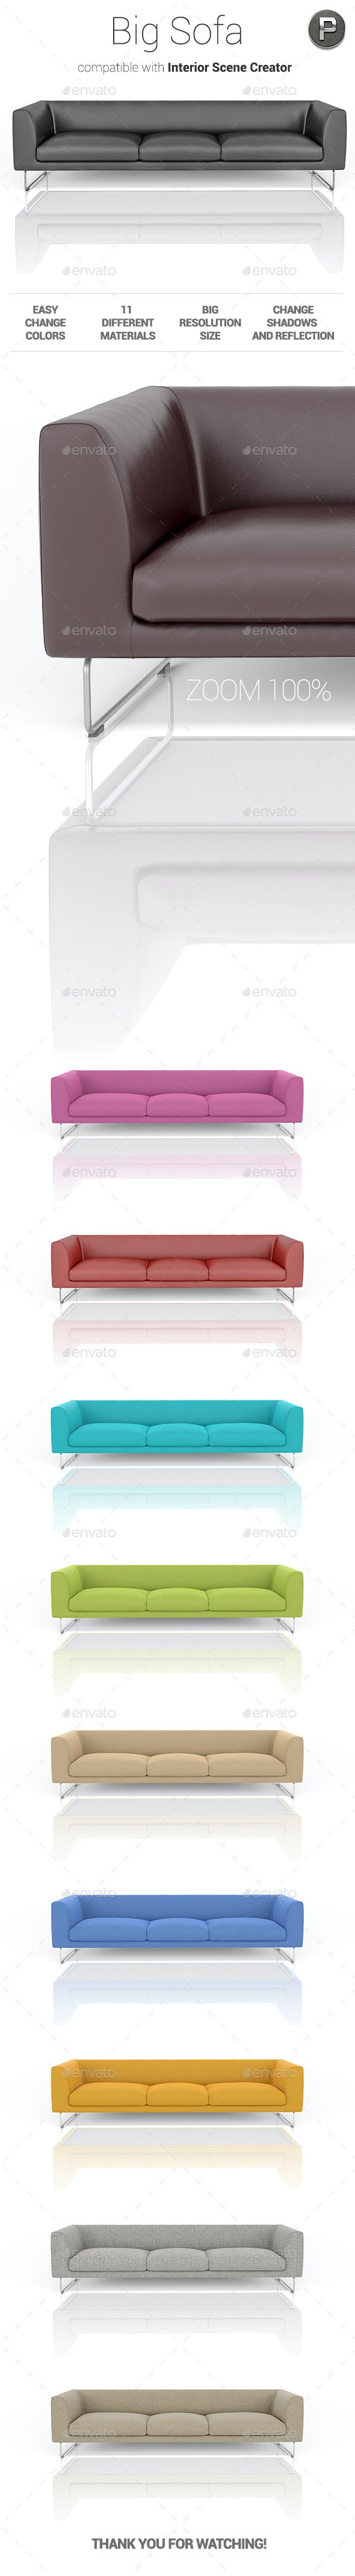 Big Sofa - Isolated 3D Render - Objects 3D Renders